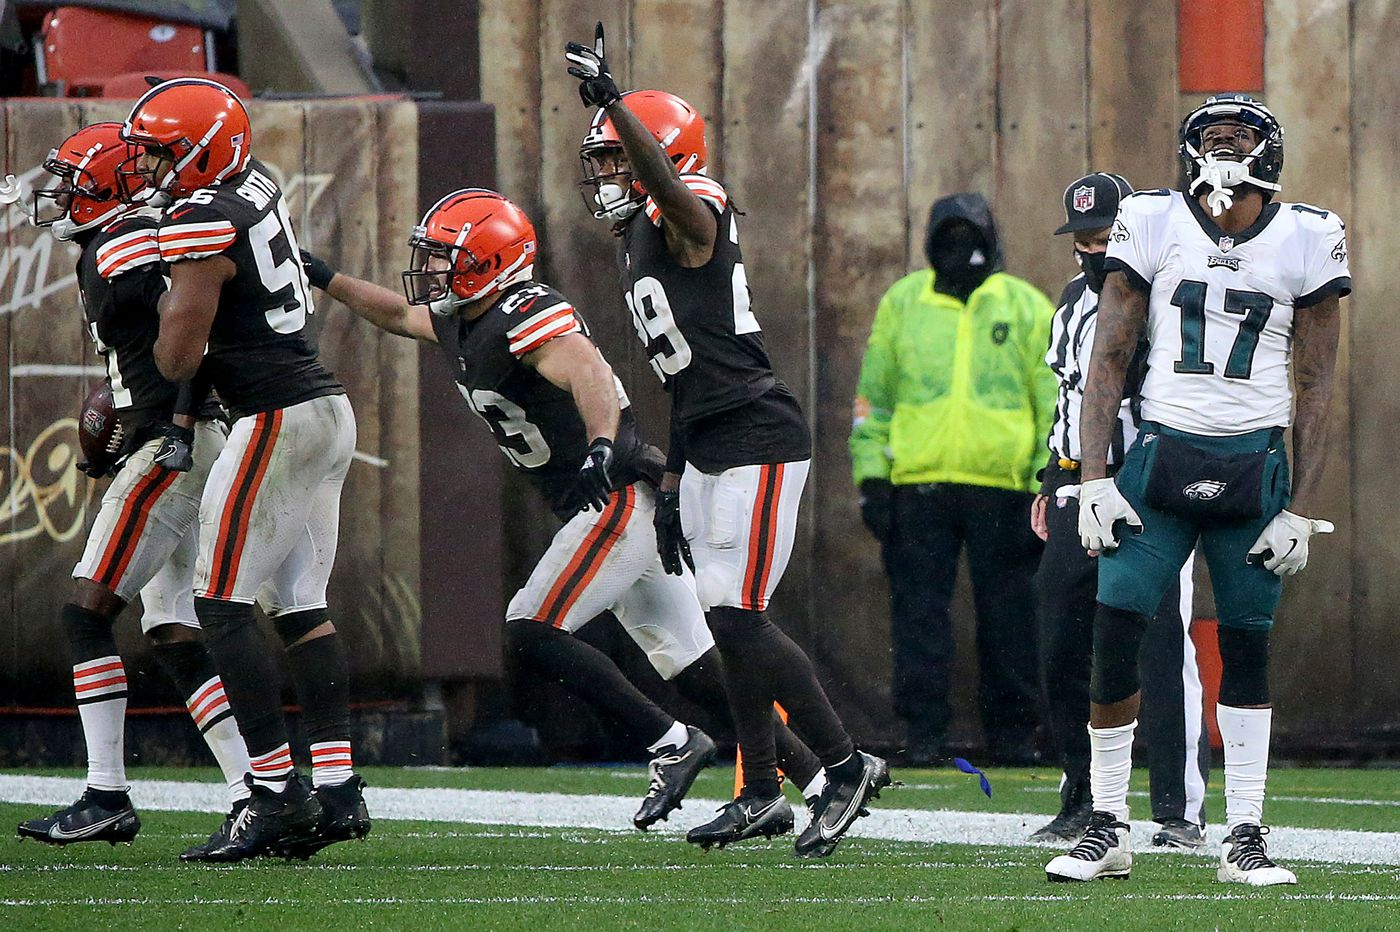 Carson Wentz, Jason Peters, and other ugly observations from the Eagles' 22-17 loss to the Browns | Mike Sielski